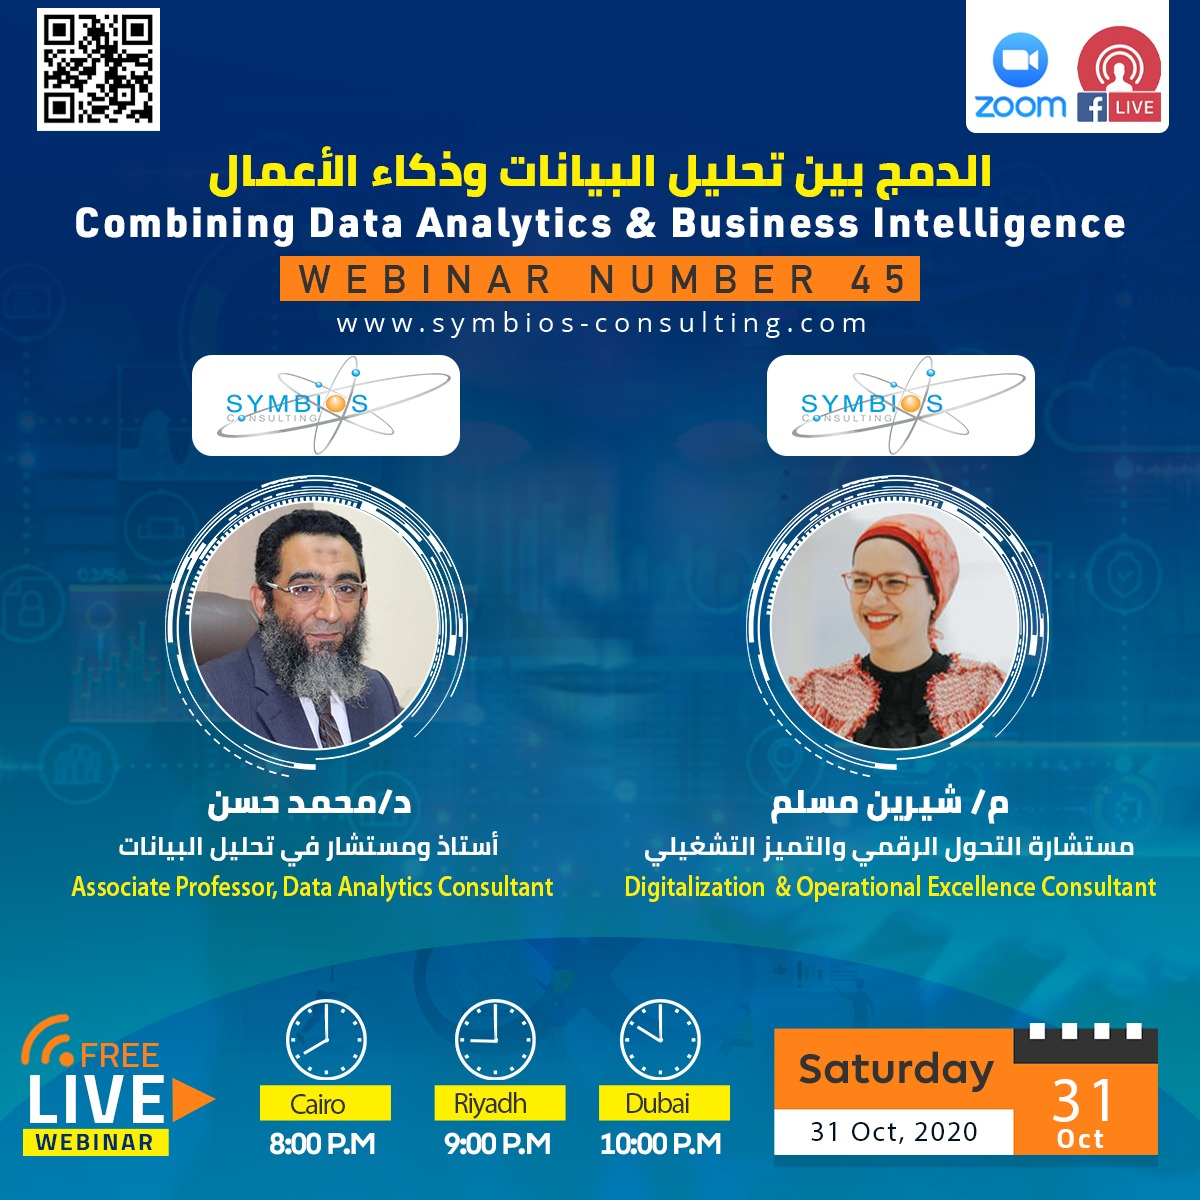 Combining Data Analytics & Business Intelligence